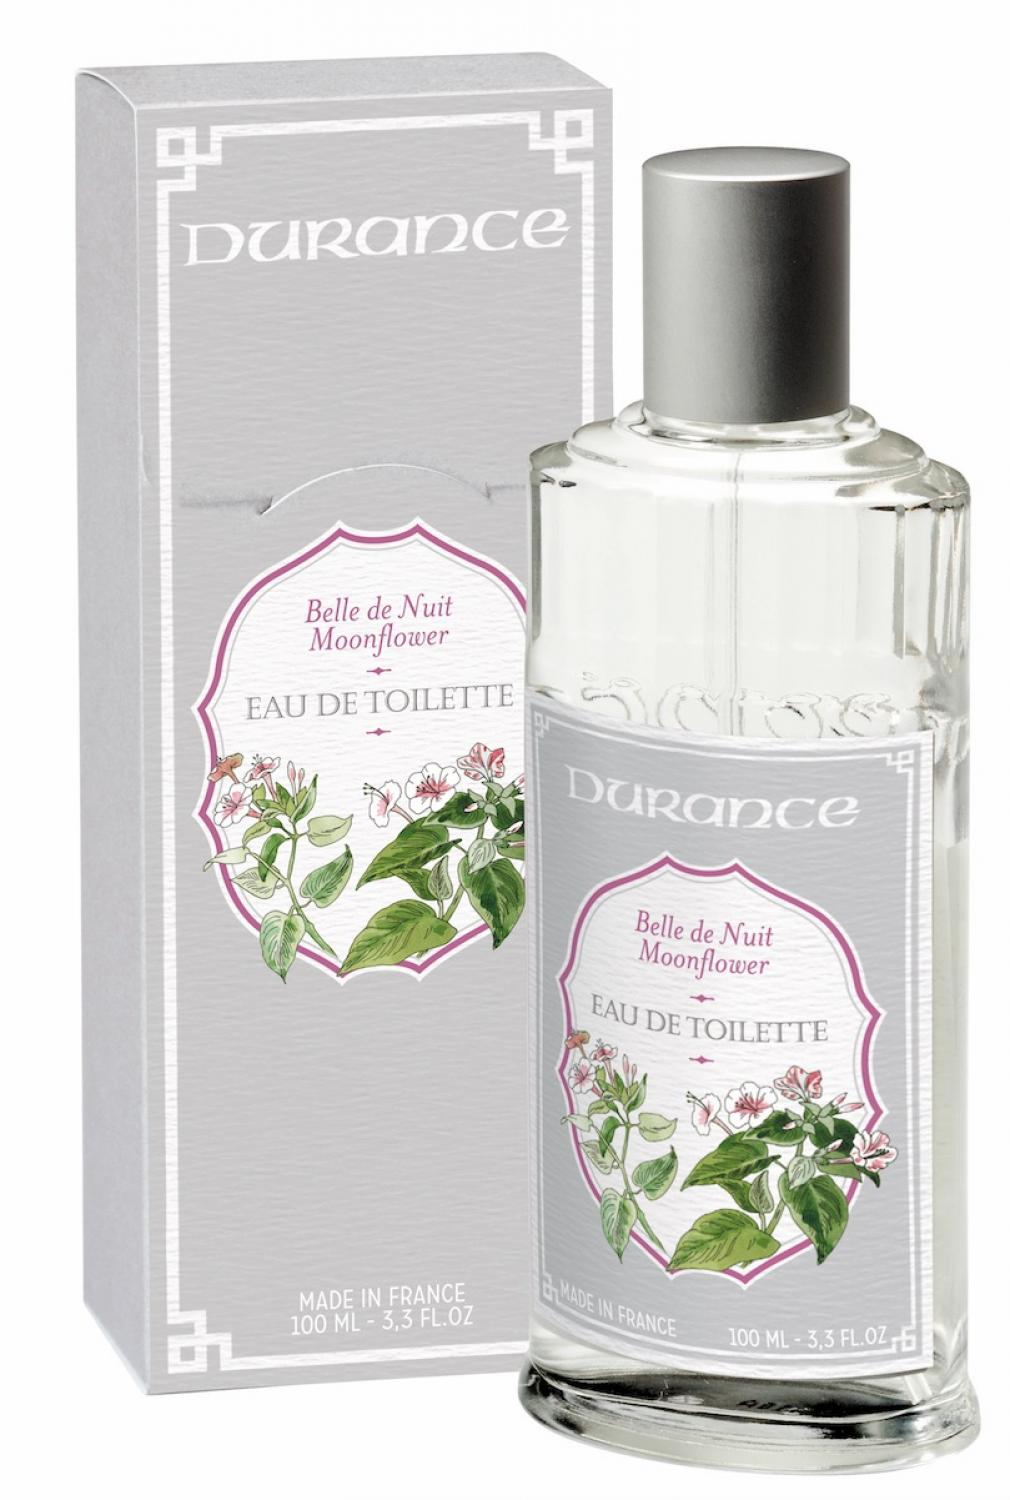 Eau de Toilette - Moonflower - 100ml 3.3fl oz